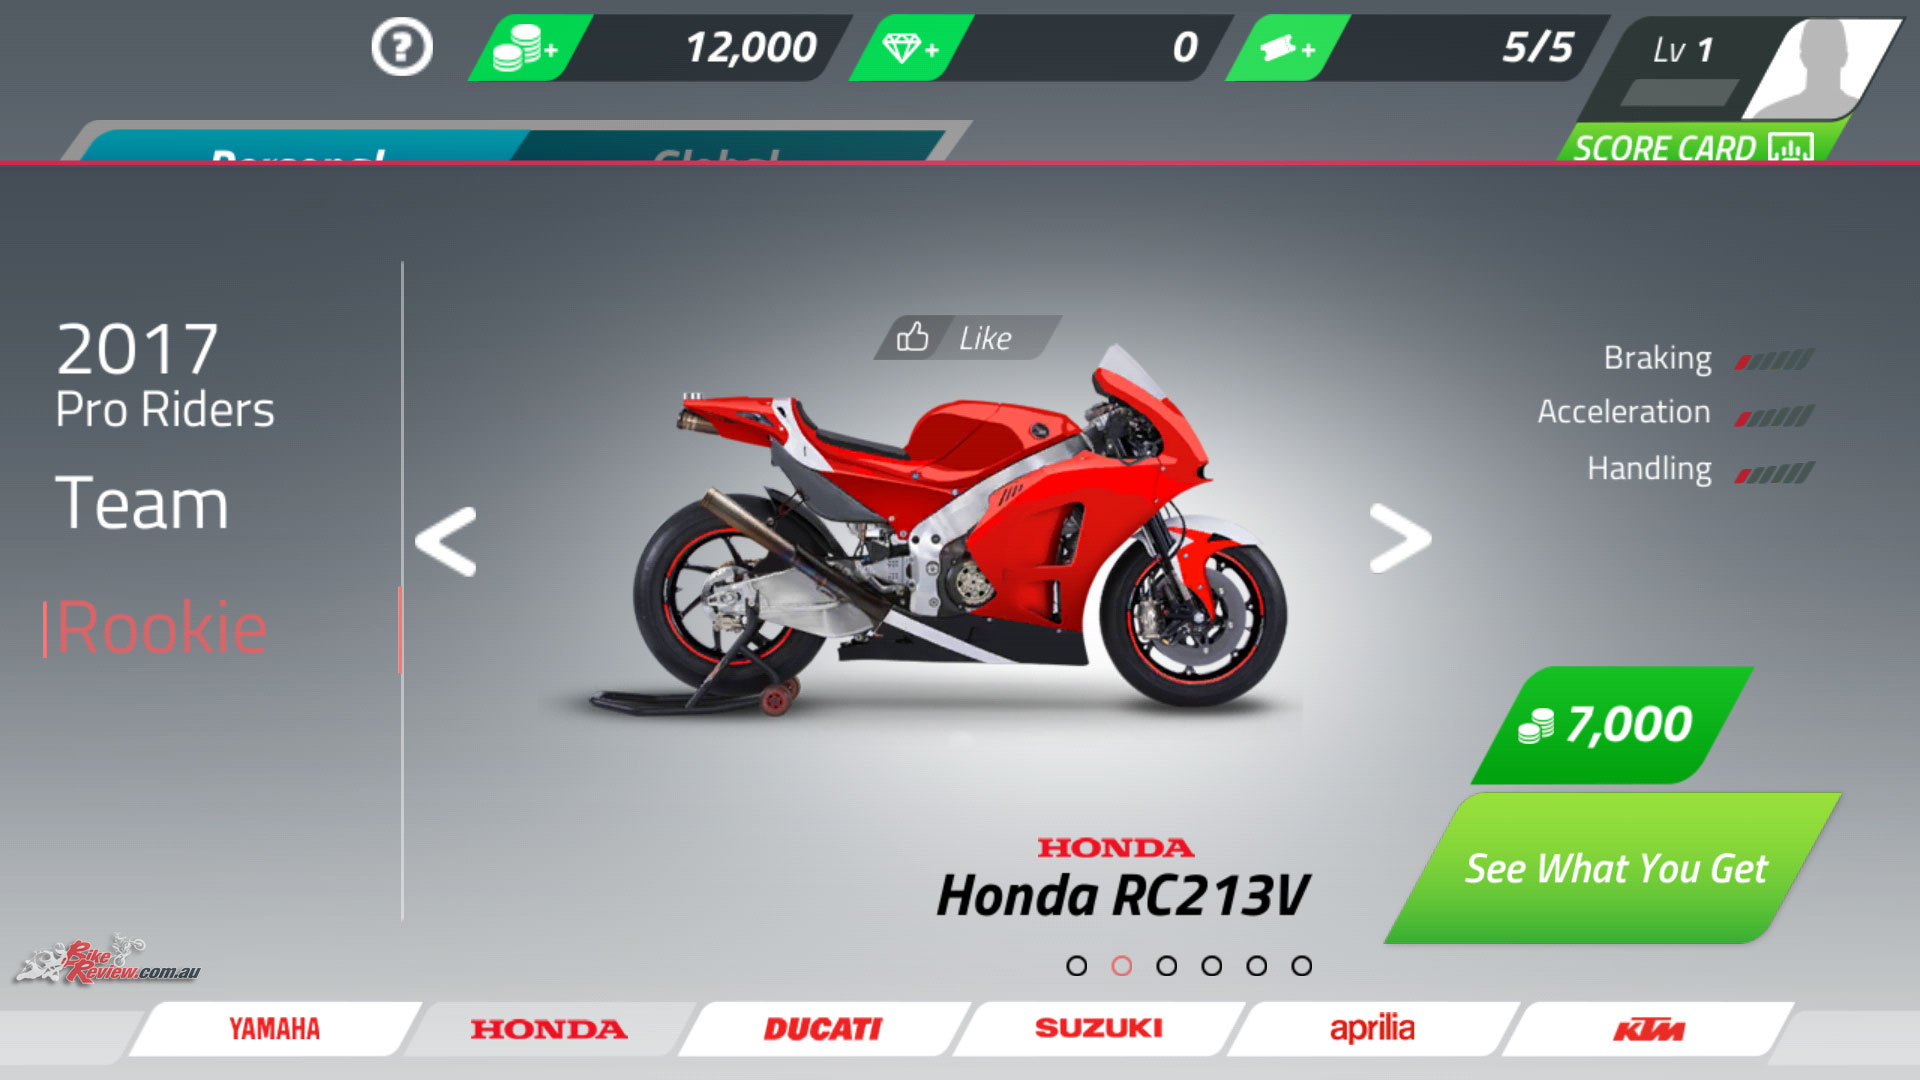 I picked the Honda RC213V